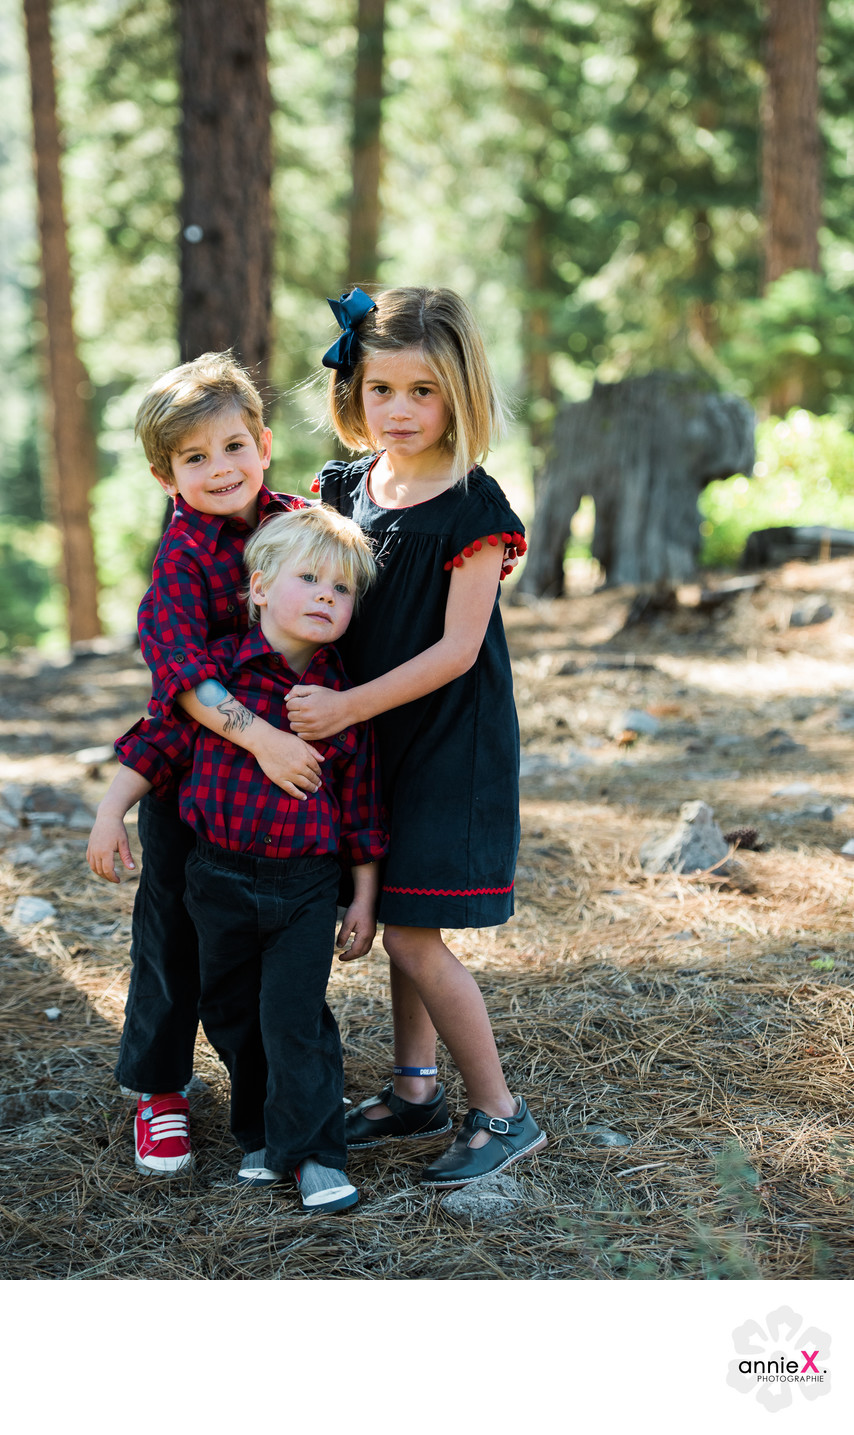 Martis Camp children photographers